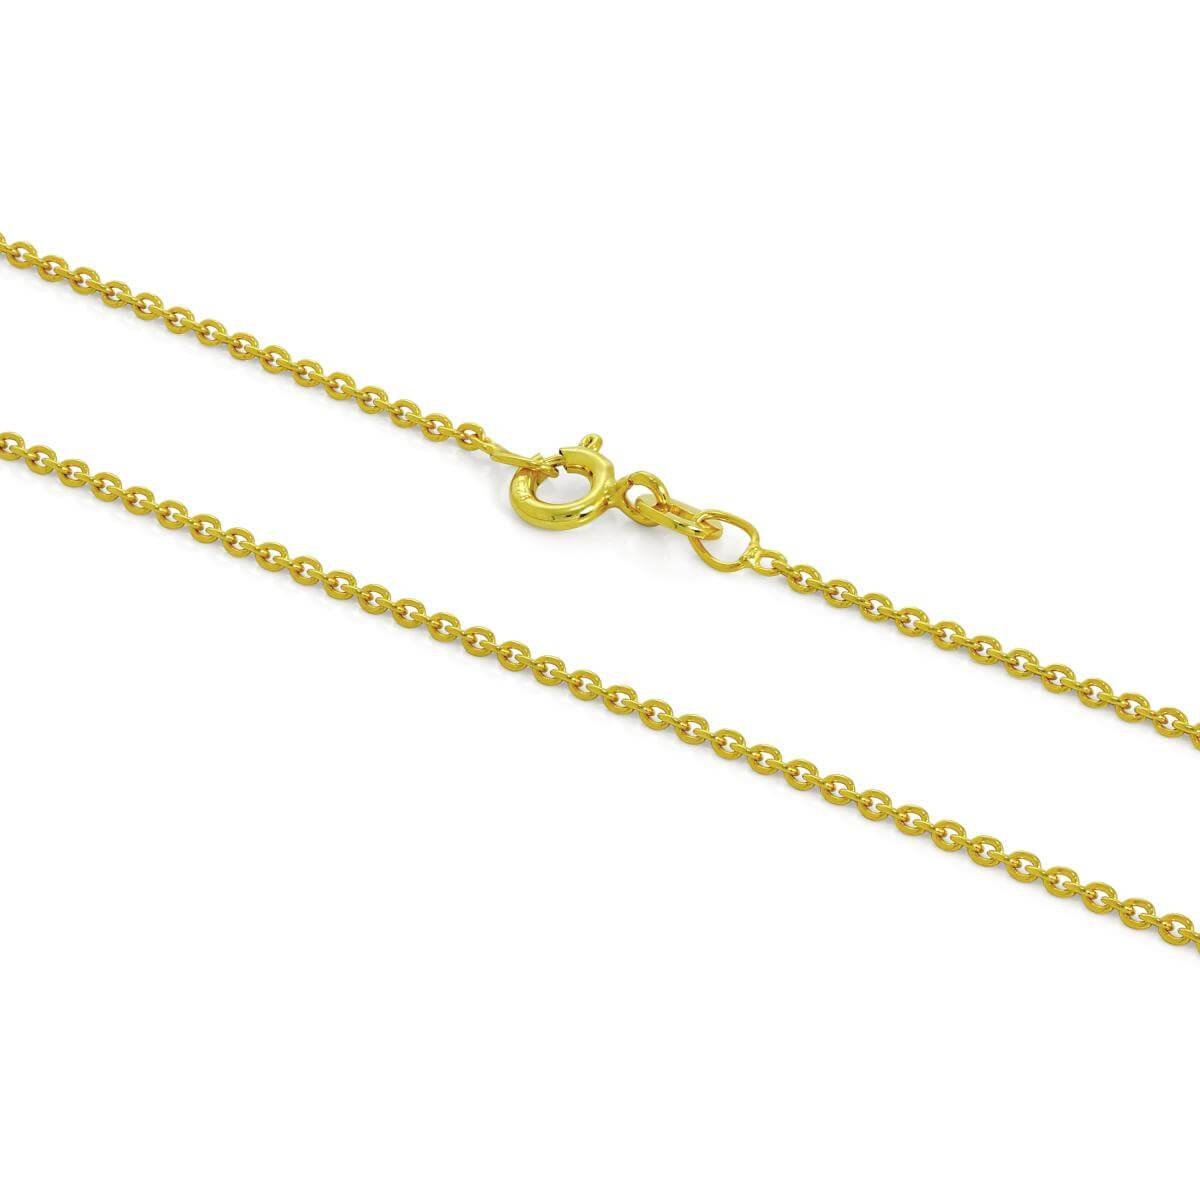 An image showing the Gold Plated Chains